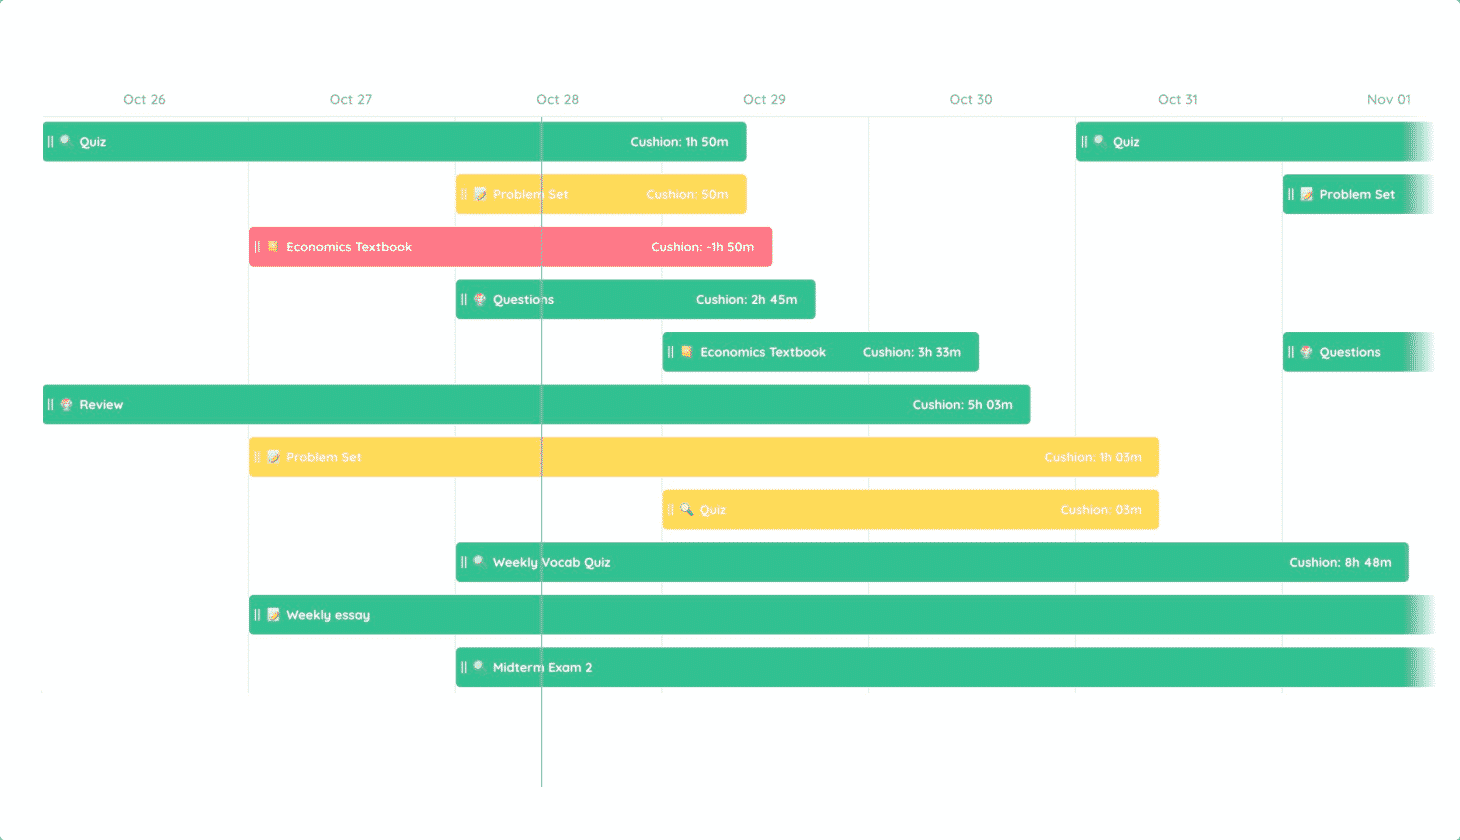 The Timeline Graph